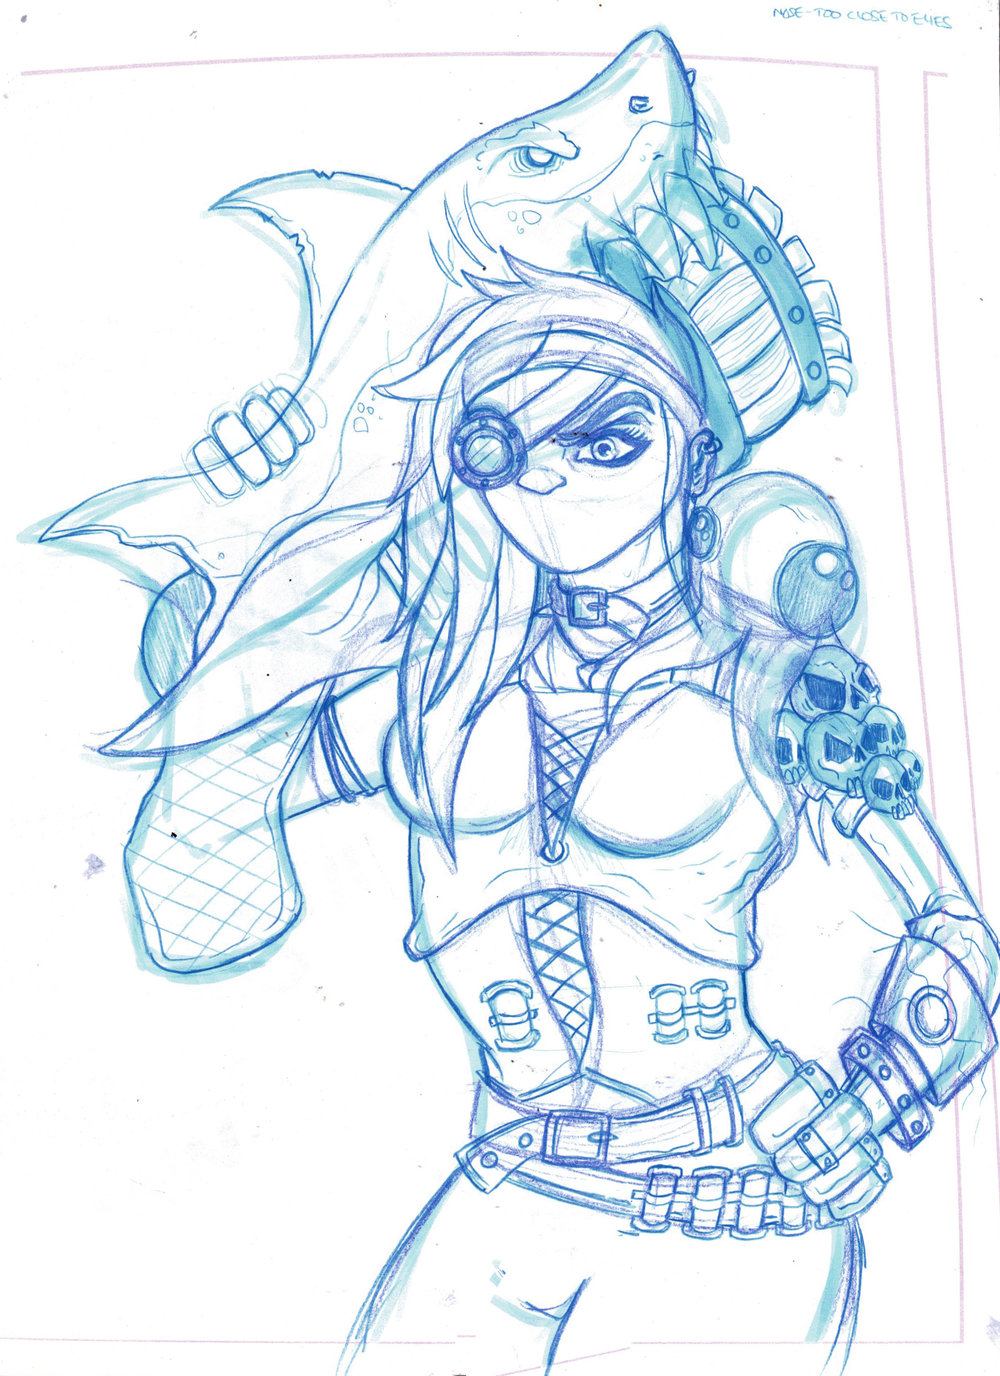 steampunk_pirate_pose_rough_2 copy.jpg